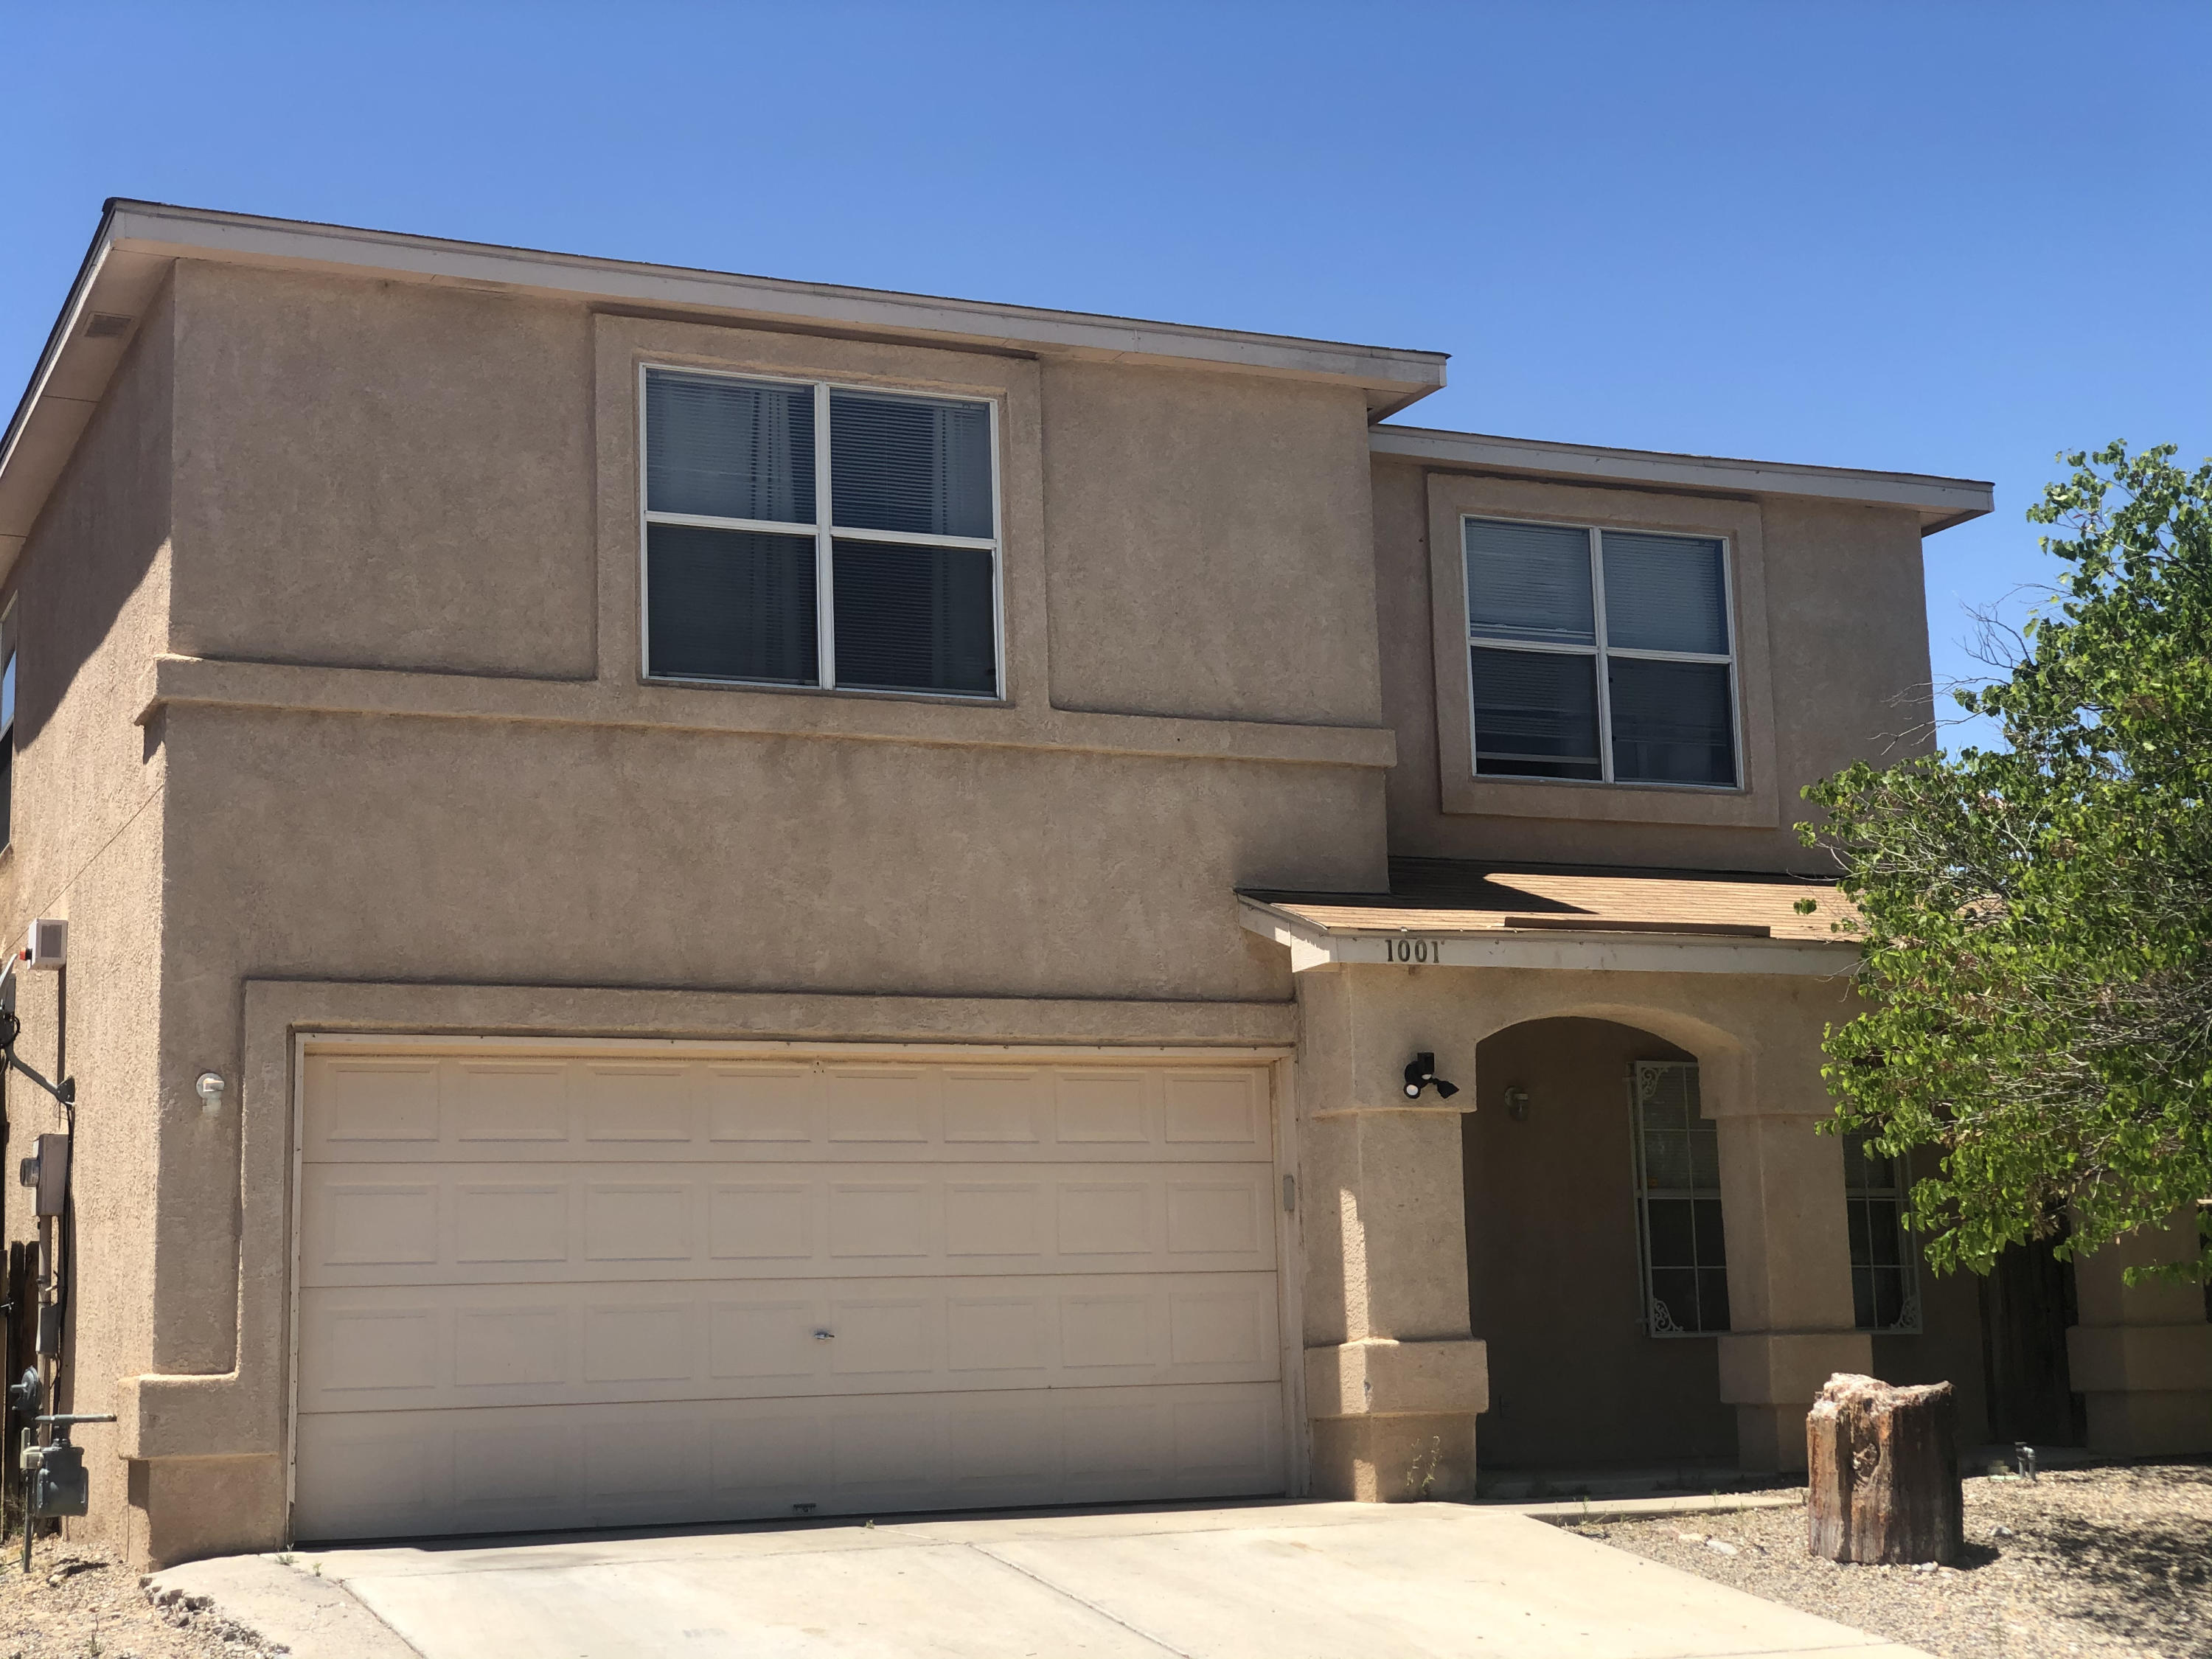 Great property in Need a New Owner, Home needs a little TLC, features HUGE master bedroom 20x19,  Two Living Areas, Huge Back Yard With Lots of Fruit Trees, Beautiful City And Mountain Views...Property Is Being Sold AS IS